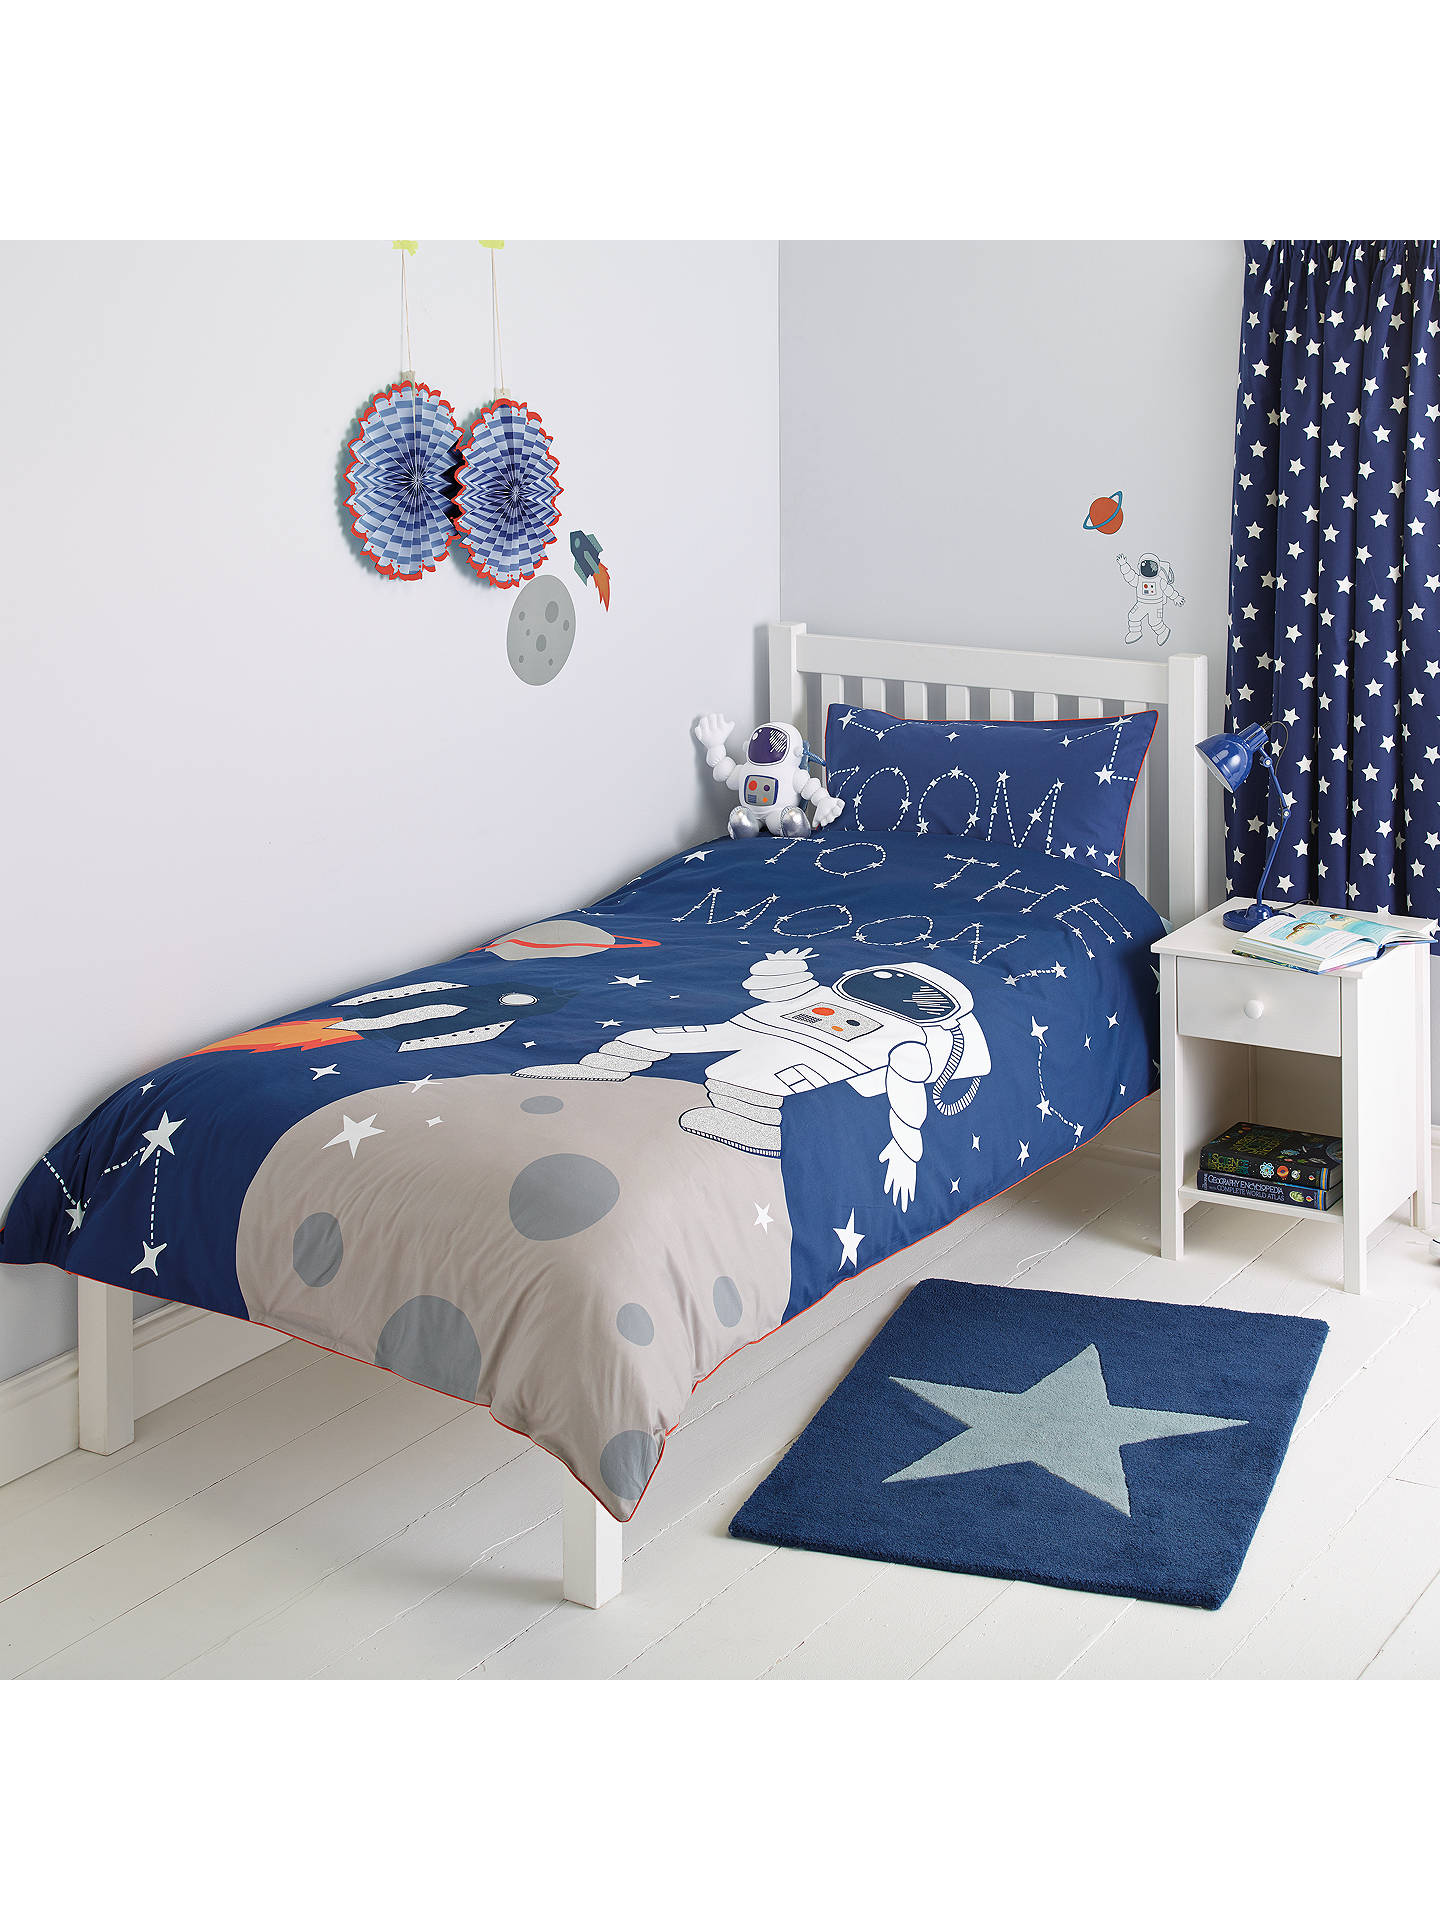 John Lewis Baby Boy Bedroom: Little Home At John Lewis Moon & Back Applique Duvet Cover